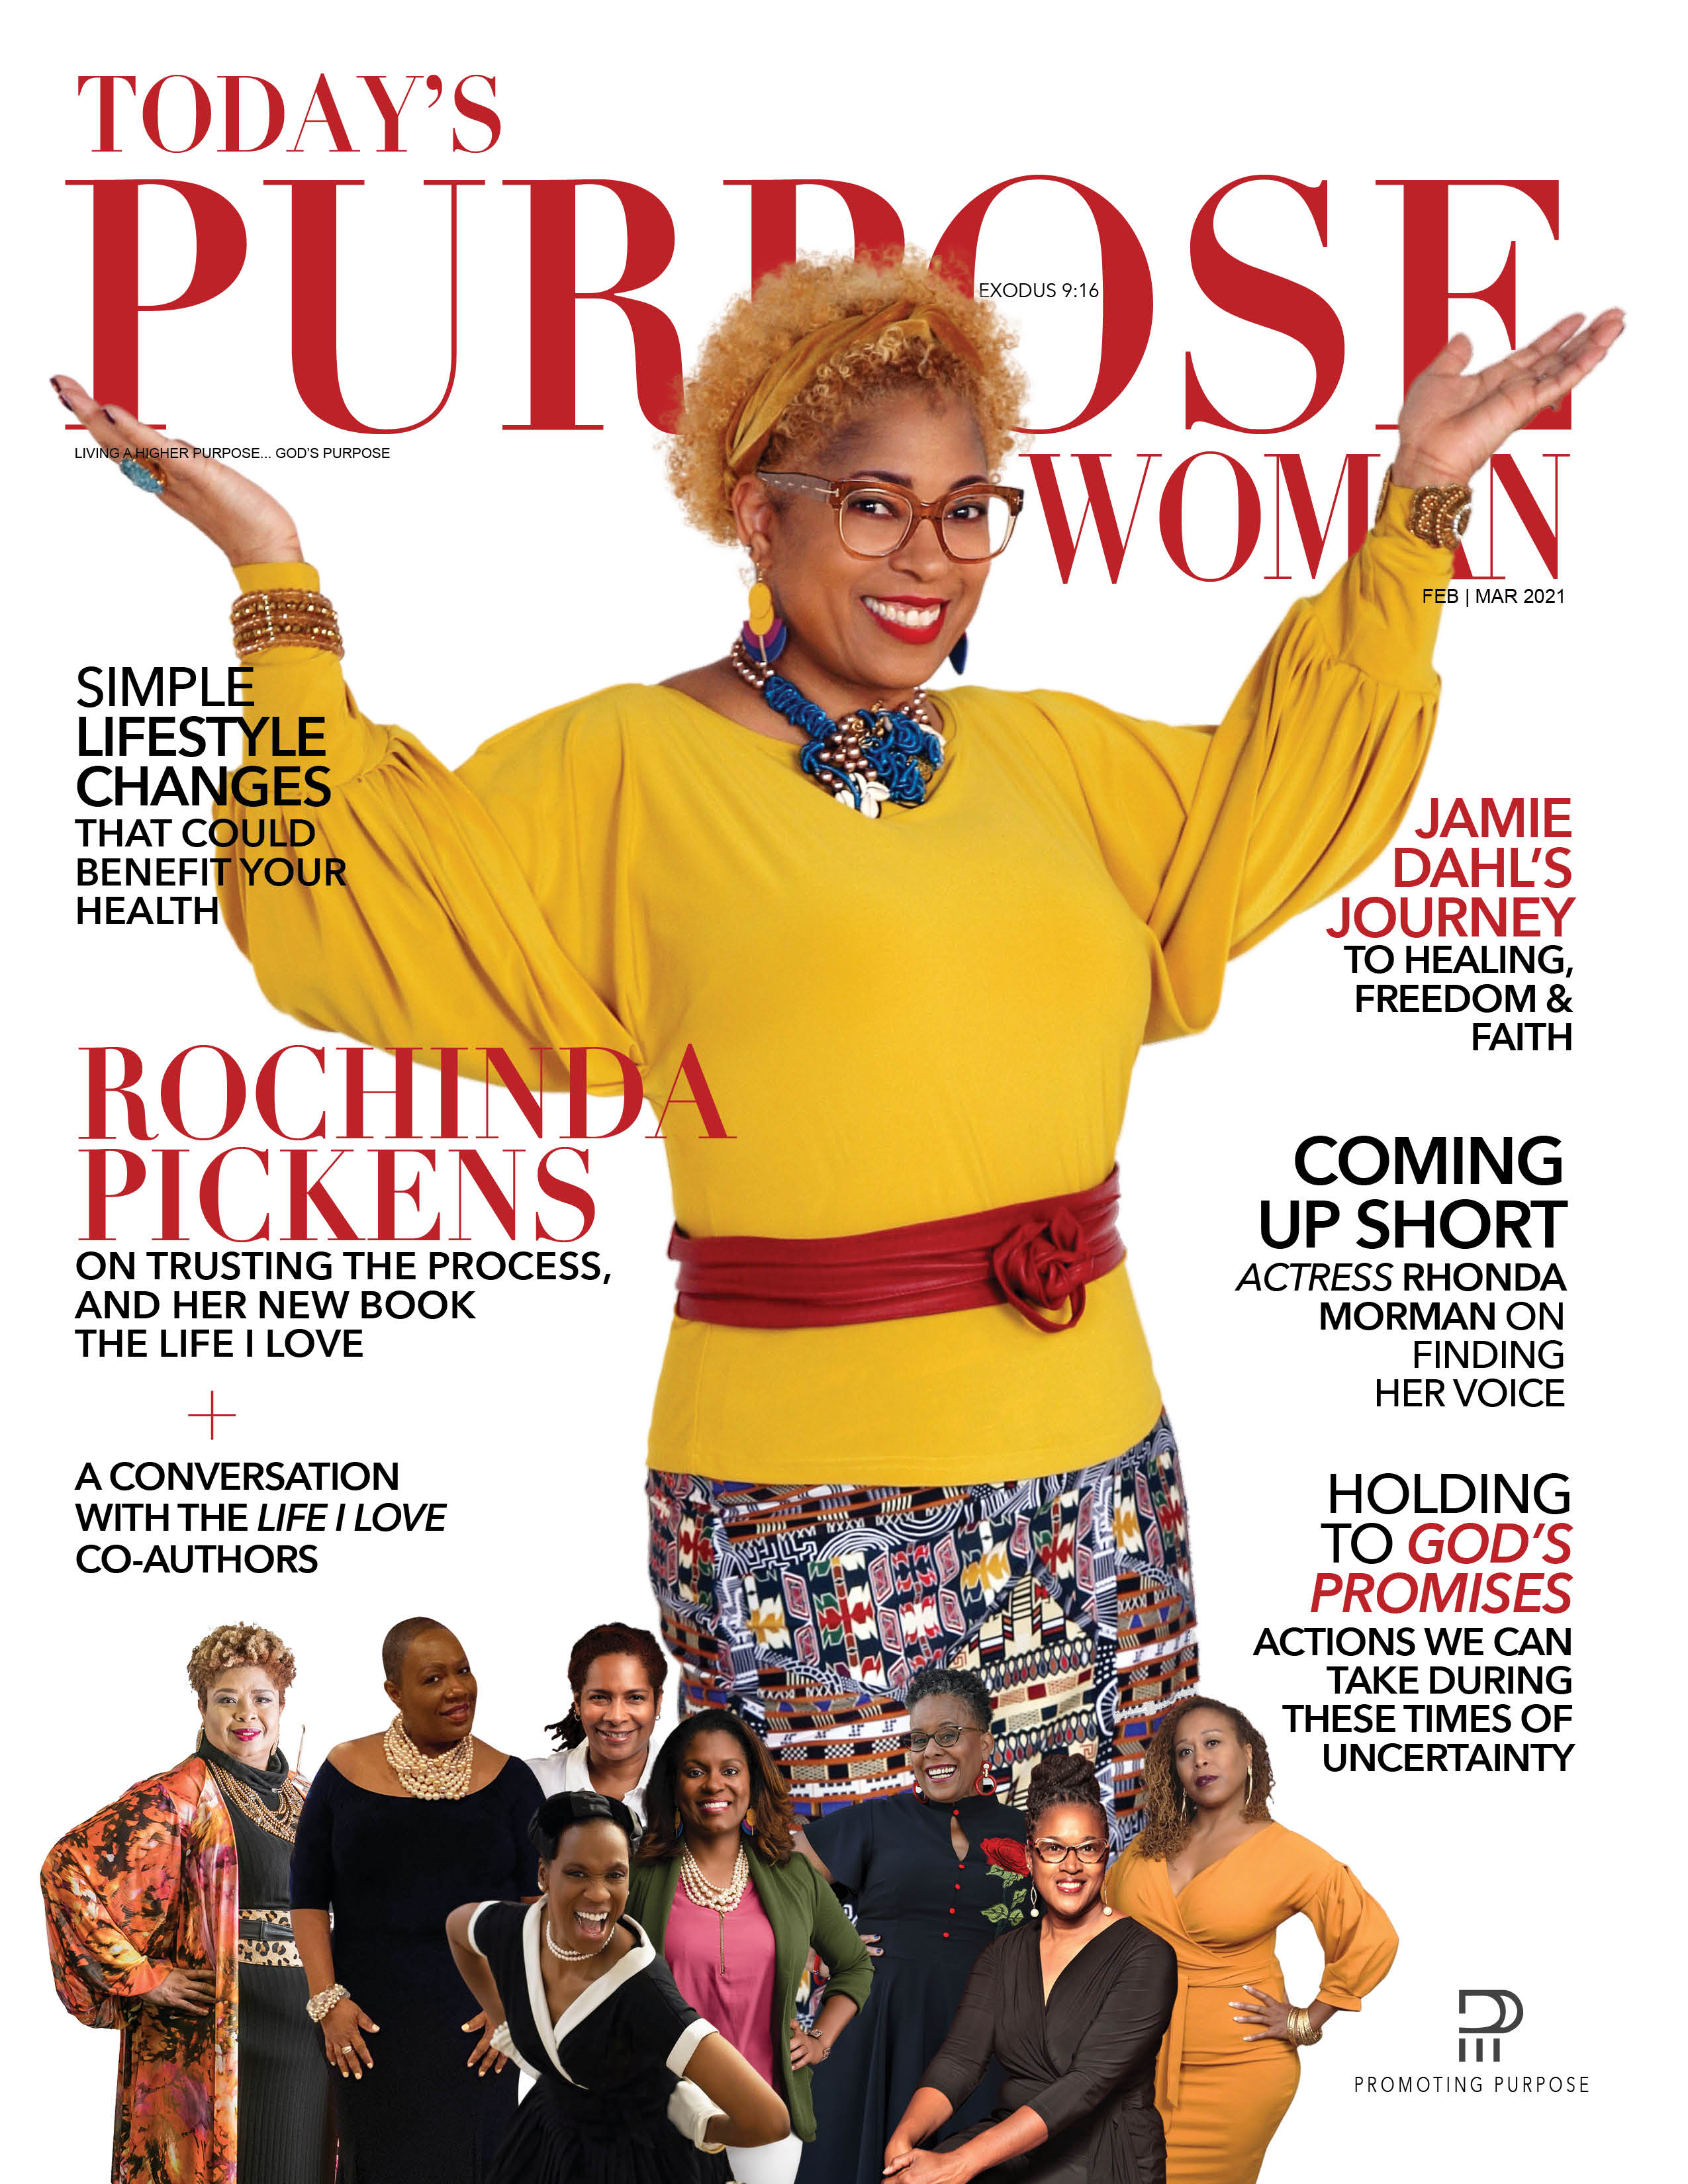 Today's Purpose Woman